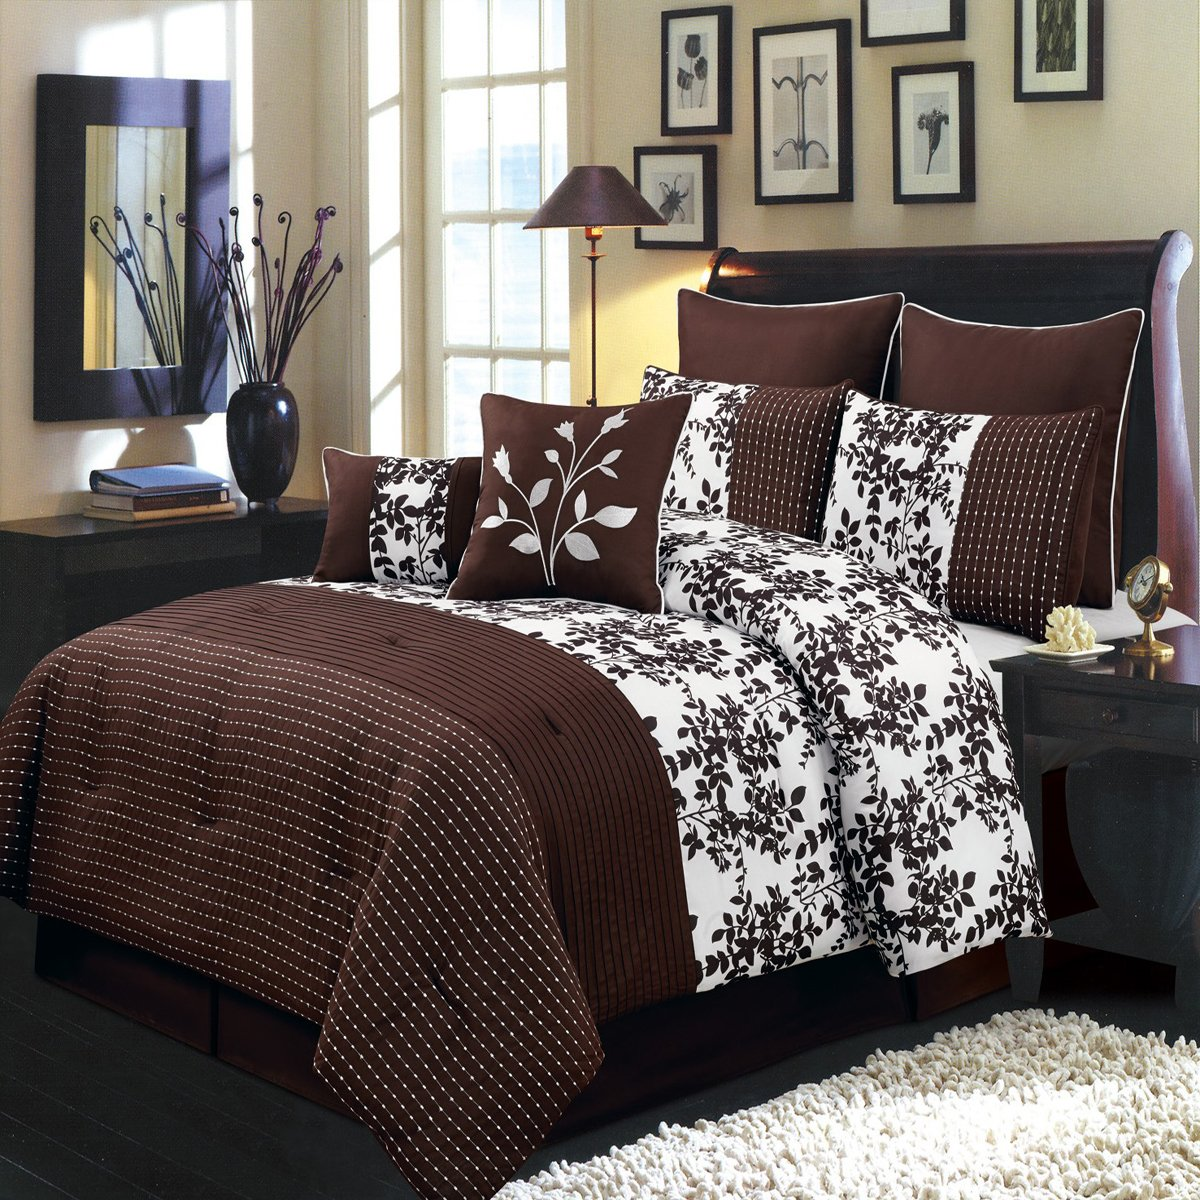 Bliss Chocolate and White Cal-King size Luxury 8 piece comforter